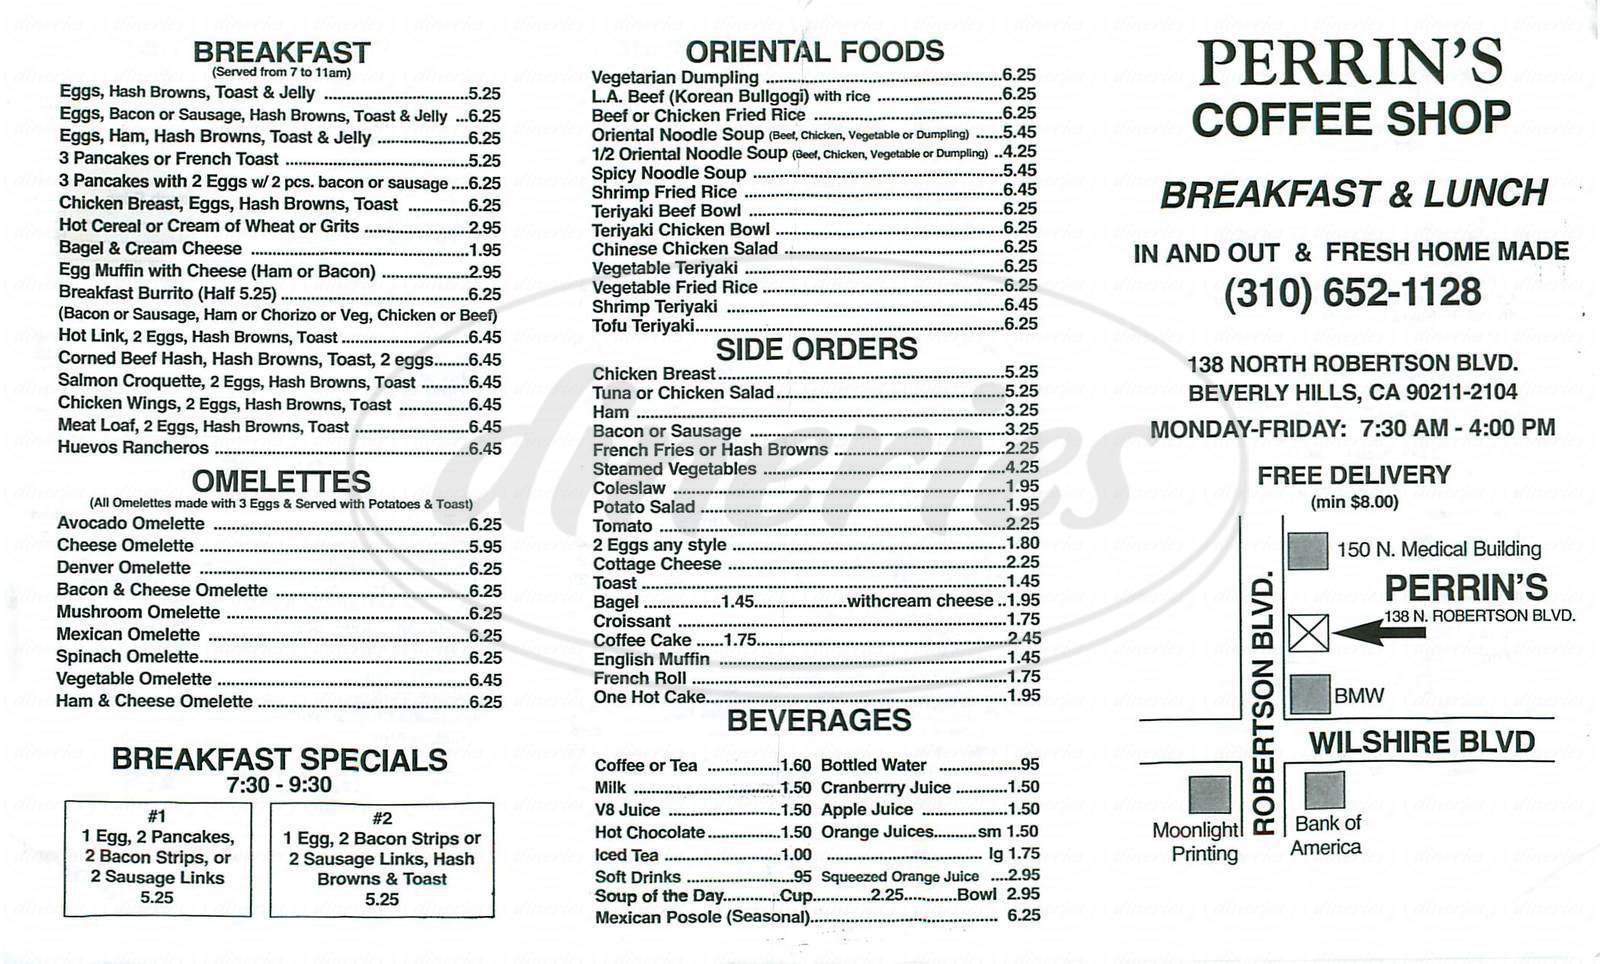 menu for Perrin's Coffee Shop